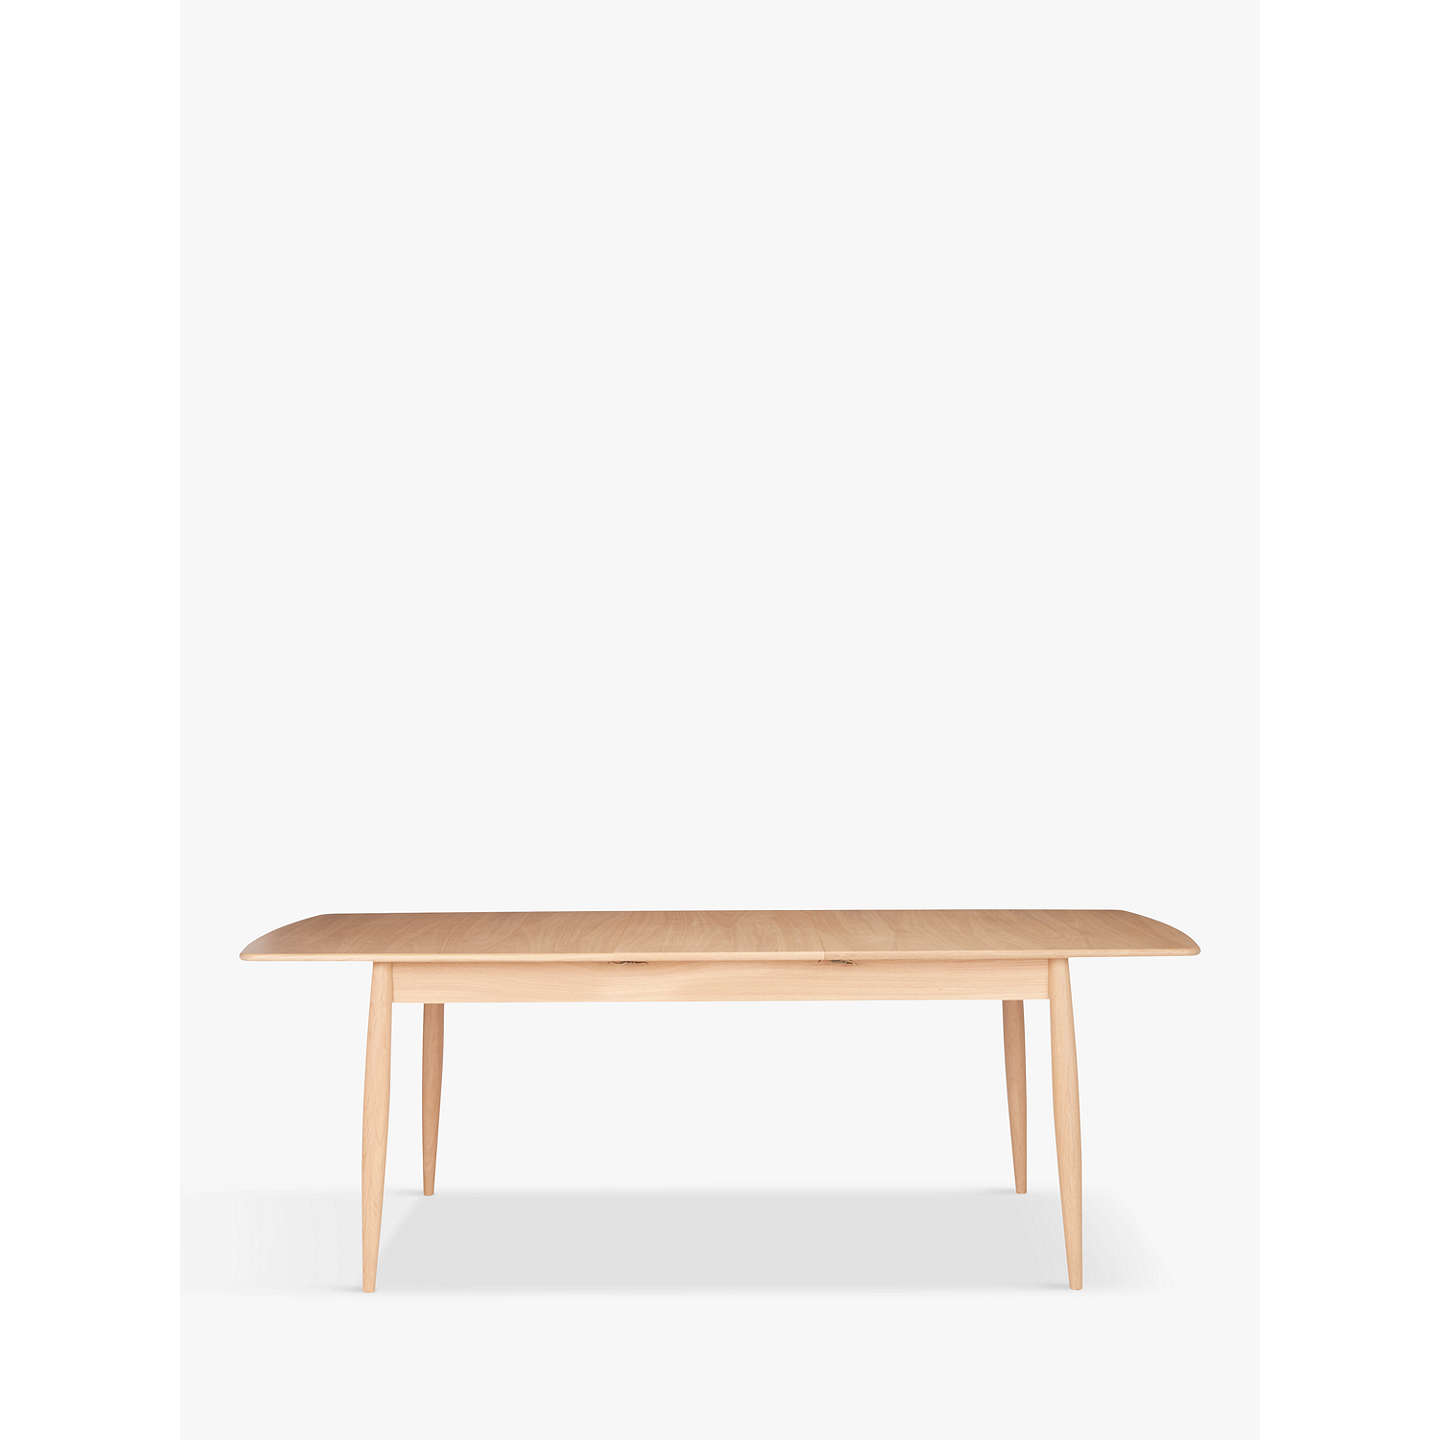 Buyercol for John Lewis Shalstone Rectangular Extending Dining Table Online at johnlewis.com